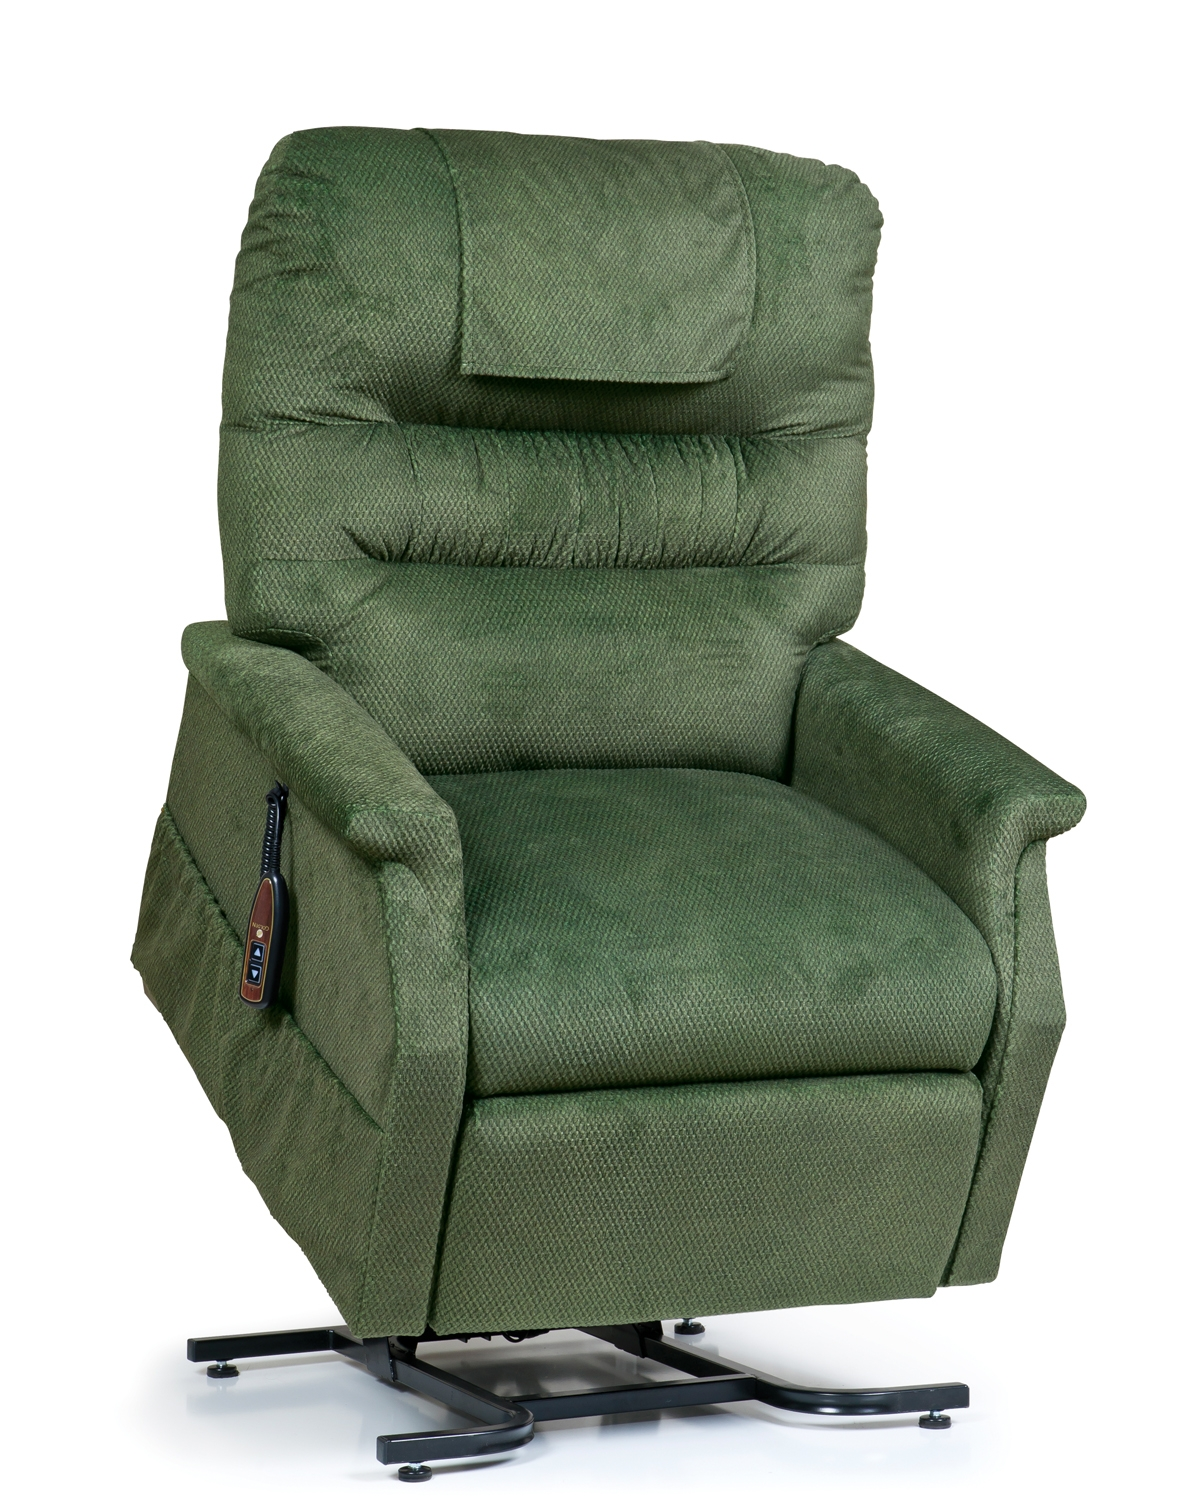 Photo of Golden Technologies Monarch Lift Chair, Size Large